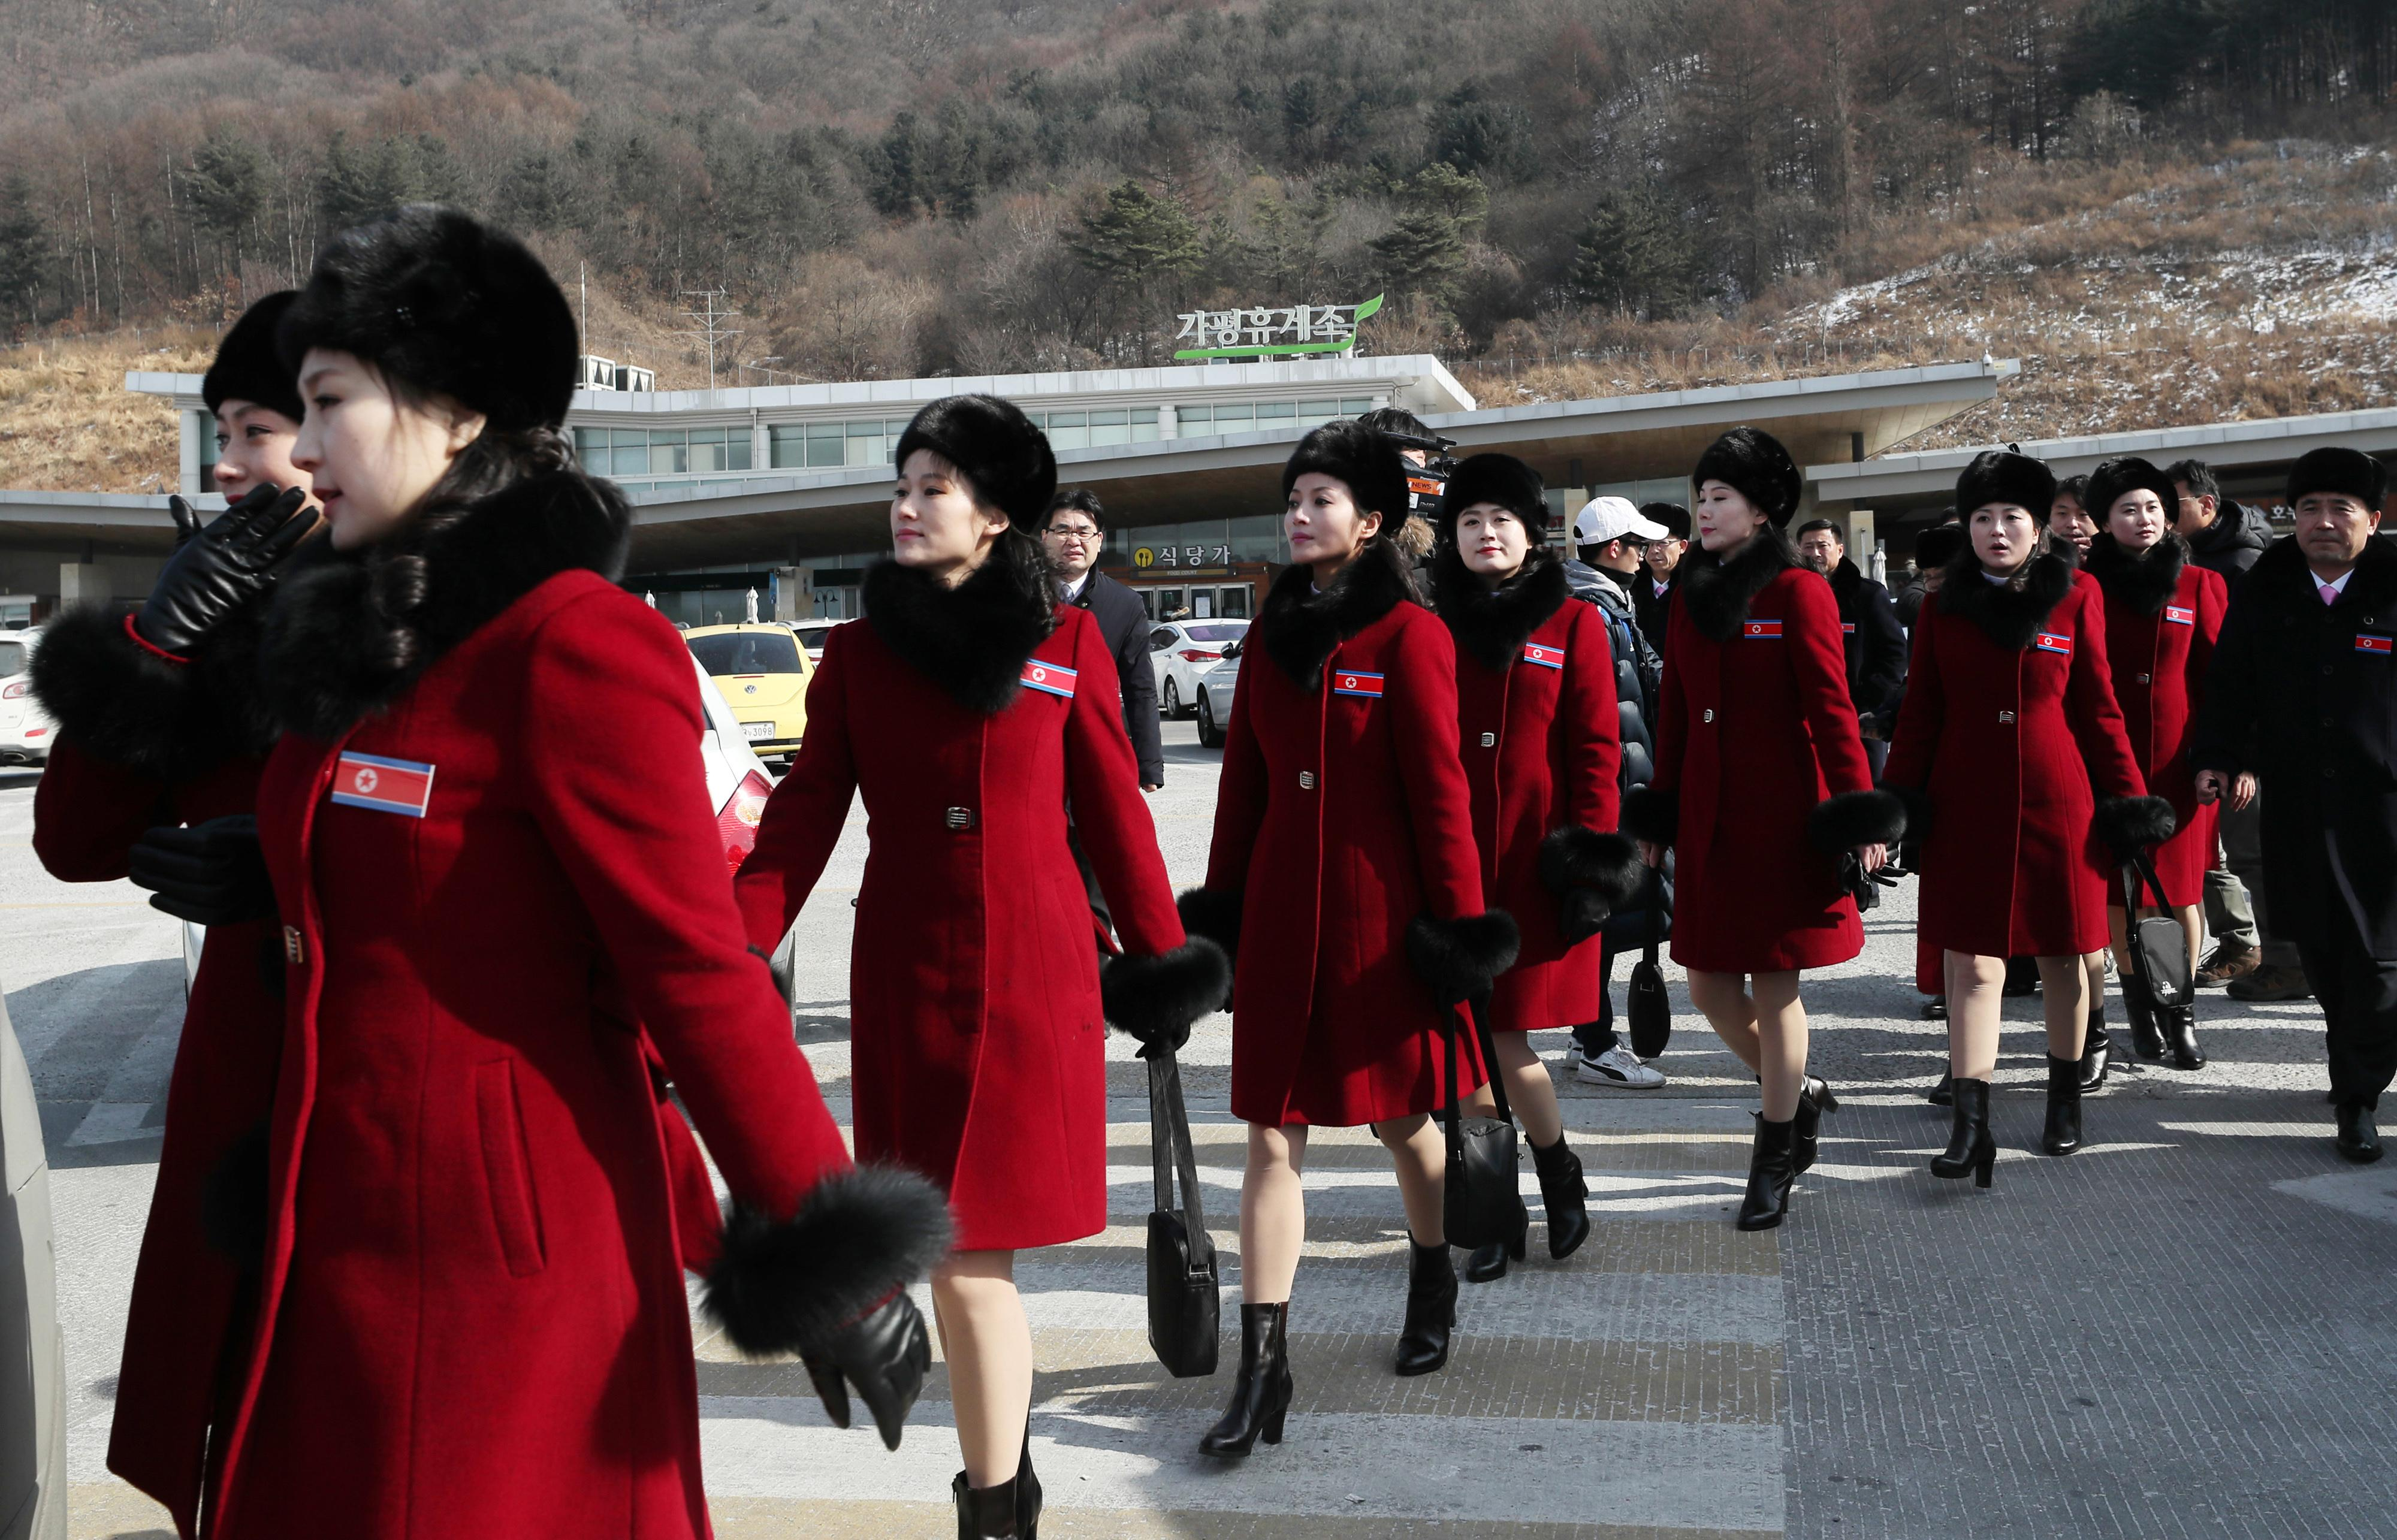 North Korean cheering squads leave an expressway service in Gapyeong, South Korea, Wednesday, Feb. 7, 2018. A North Korean delegation, including members of a state-trained cheering group, arrived in South Korea on Wednesday for the Pyeongchang Winter Olympics. (Lee Ji-eun/Yonhap via AP)